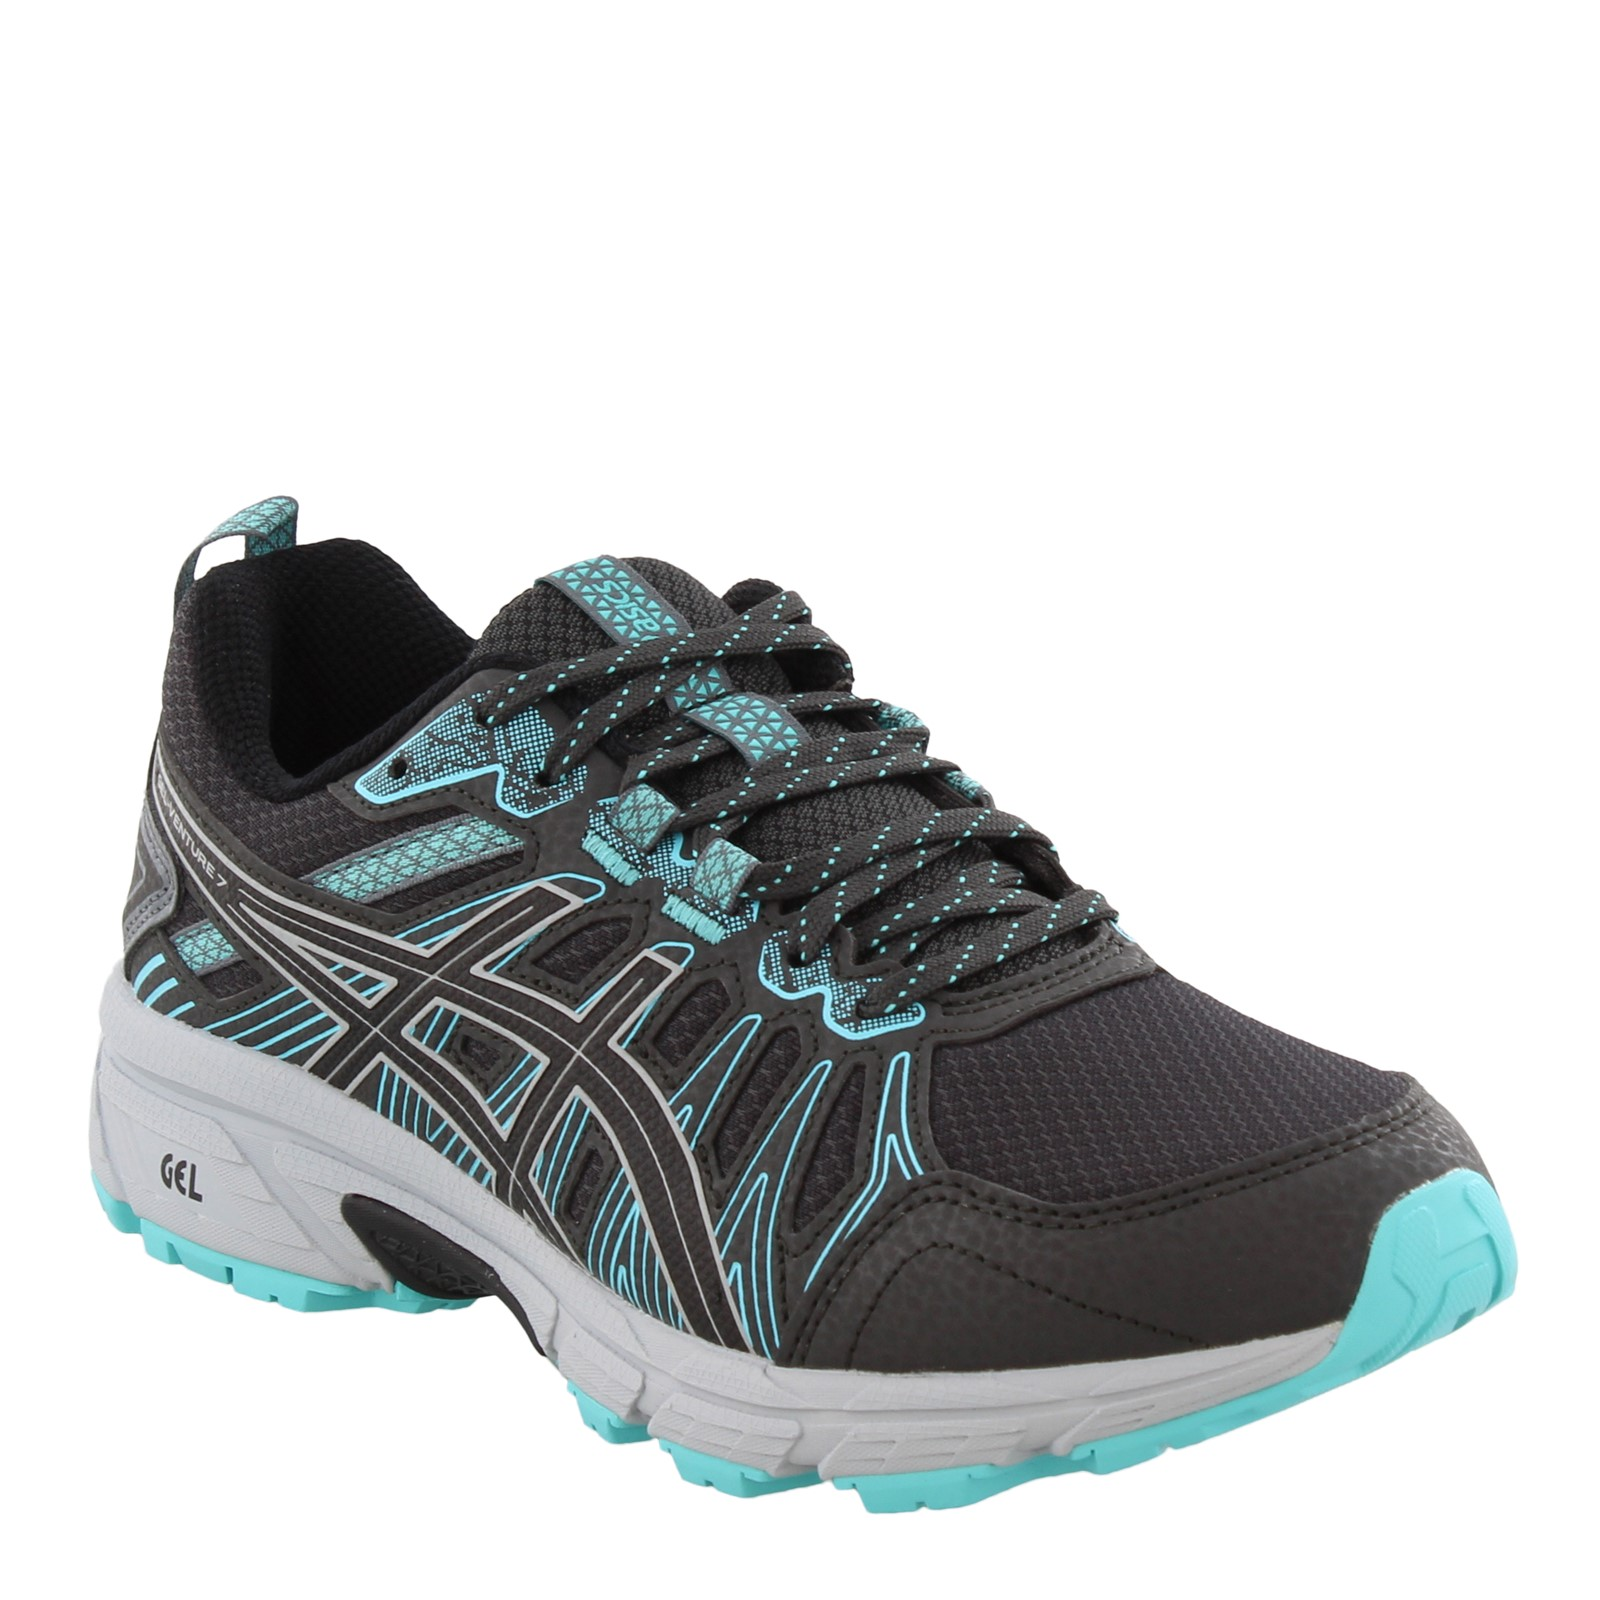 Women's Asics, Gel Venture 7 Trail